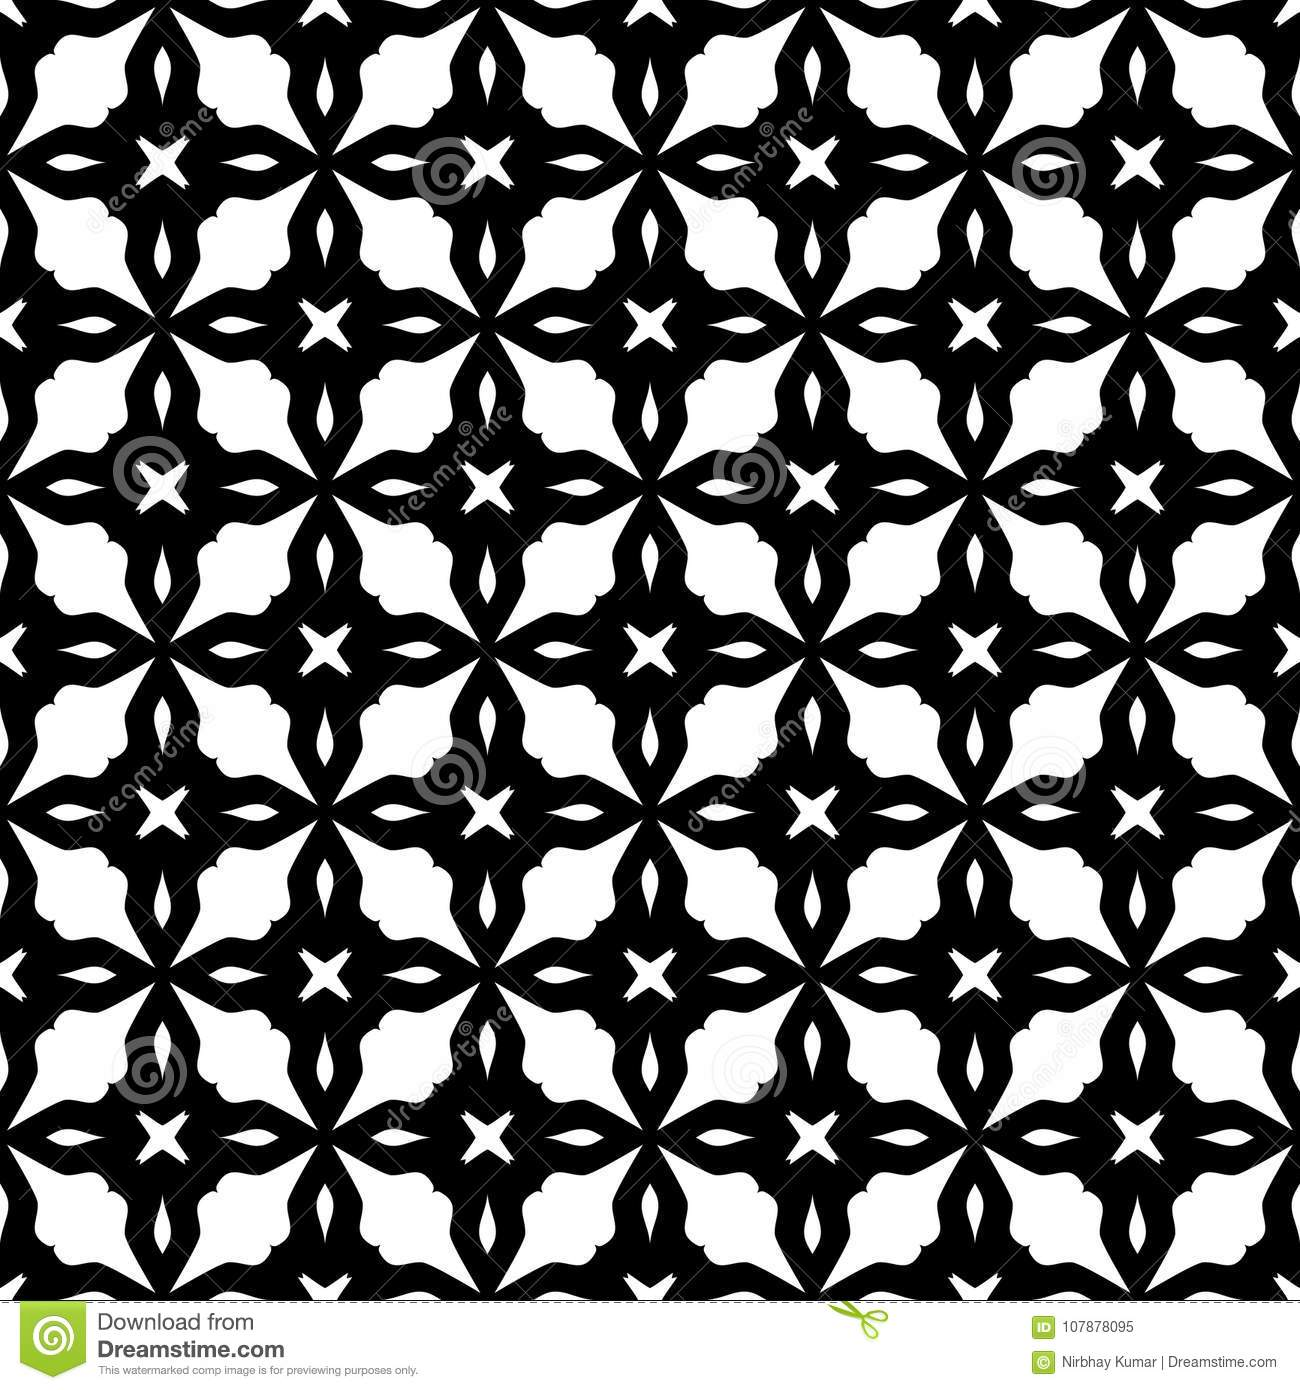 Simple Wallpaper Home Screen Black And White - pattern-website-background-wallpaper-screen-sever-book-cover-printing-laser-cutting-designs-vector-black-white-107878095  Pic_757279.jpg